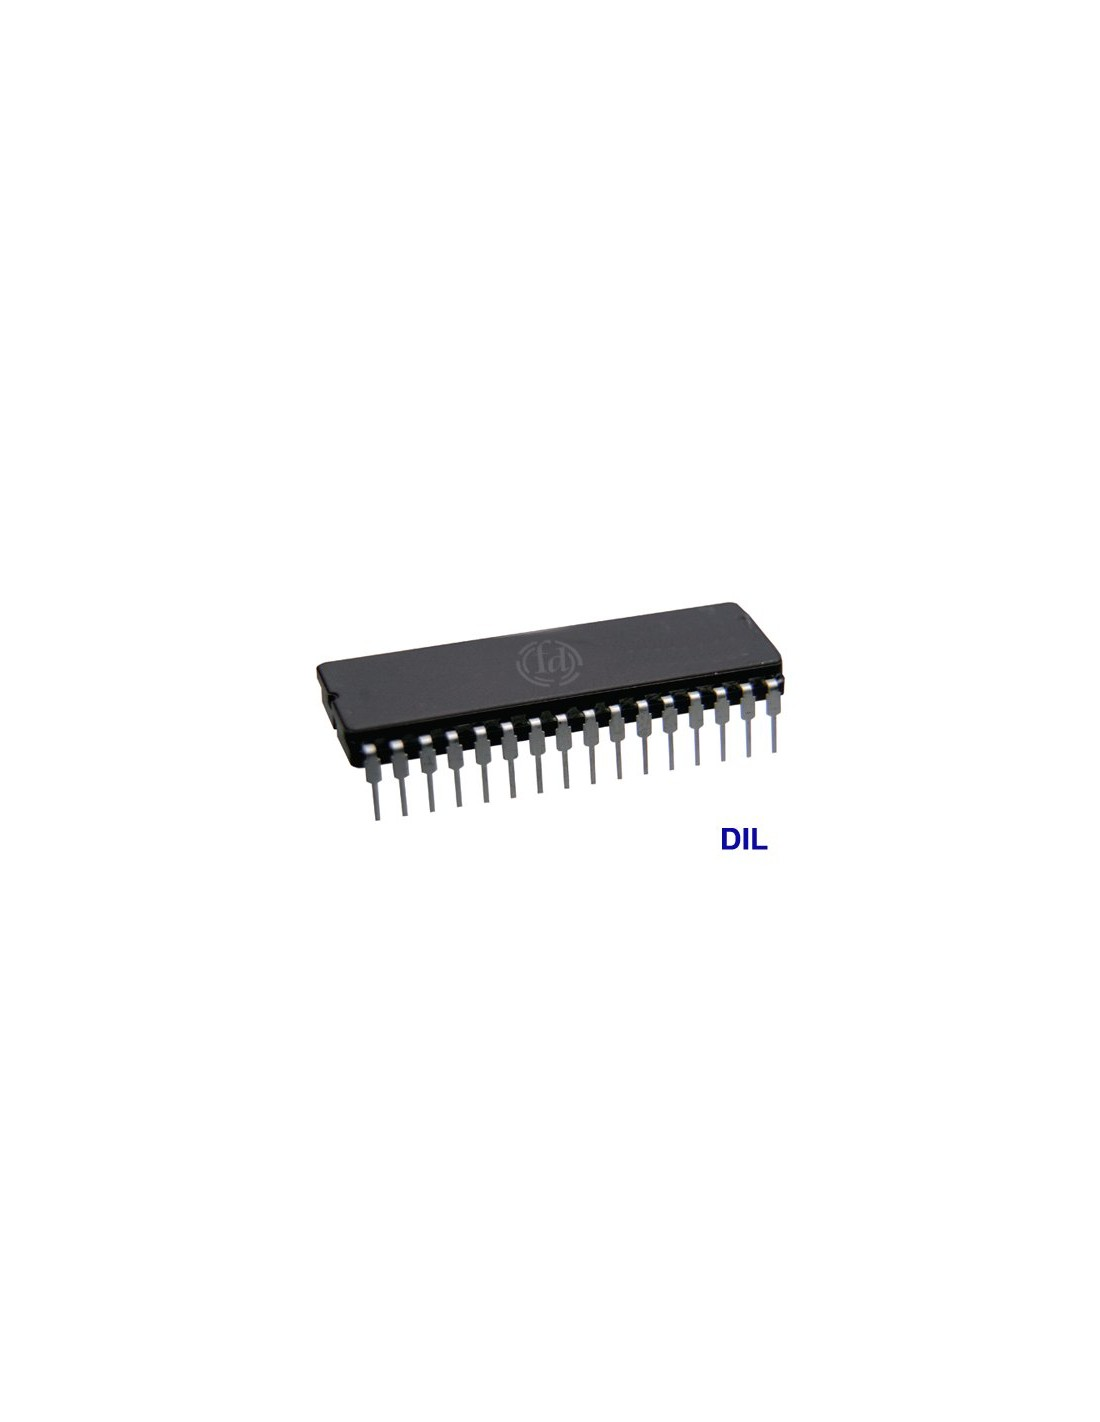 New programmed DIL-chip